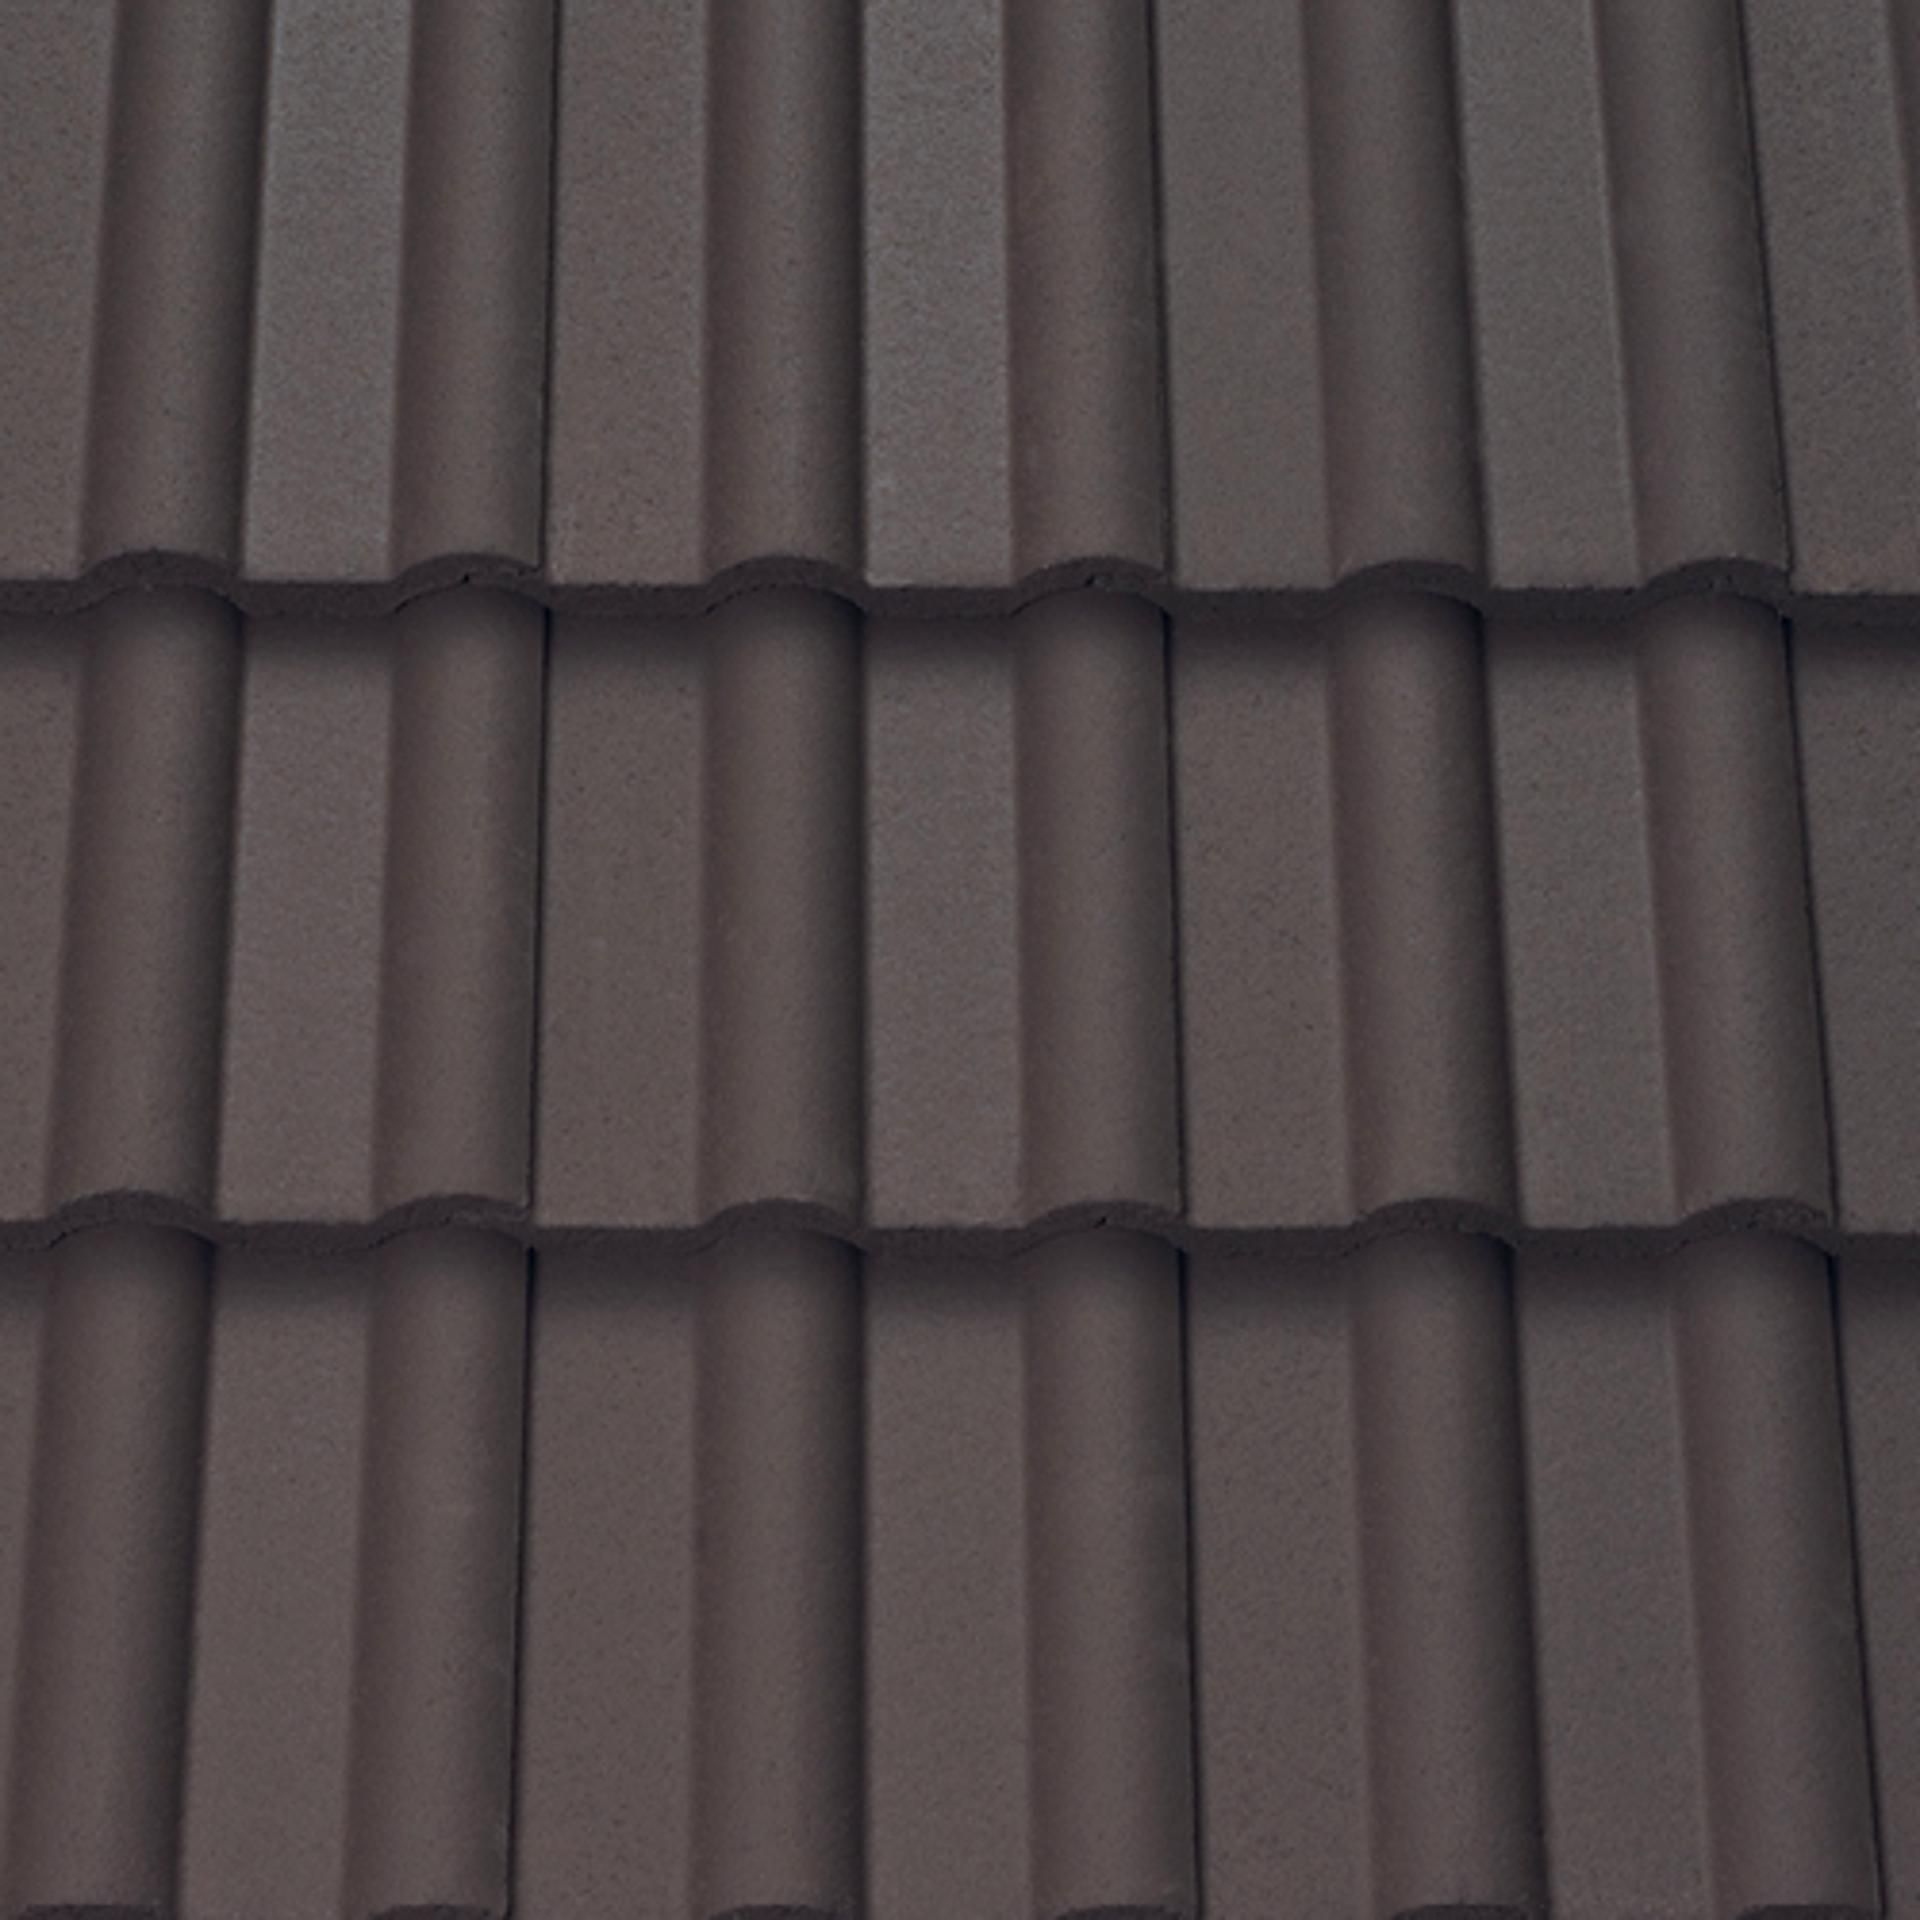 Brown Roof Tiles Texture Tiles Texture Brown Roofs Clay Roof Tiles